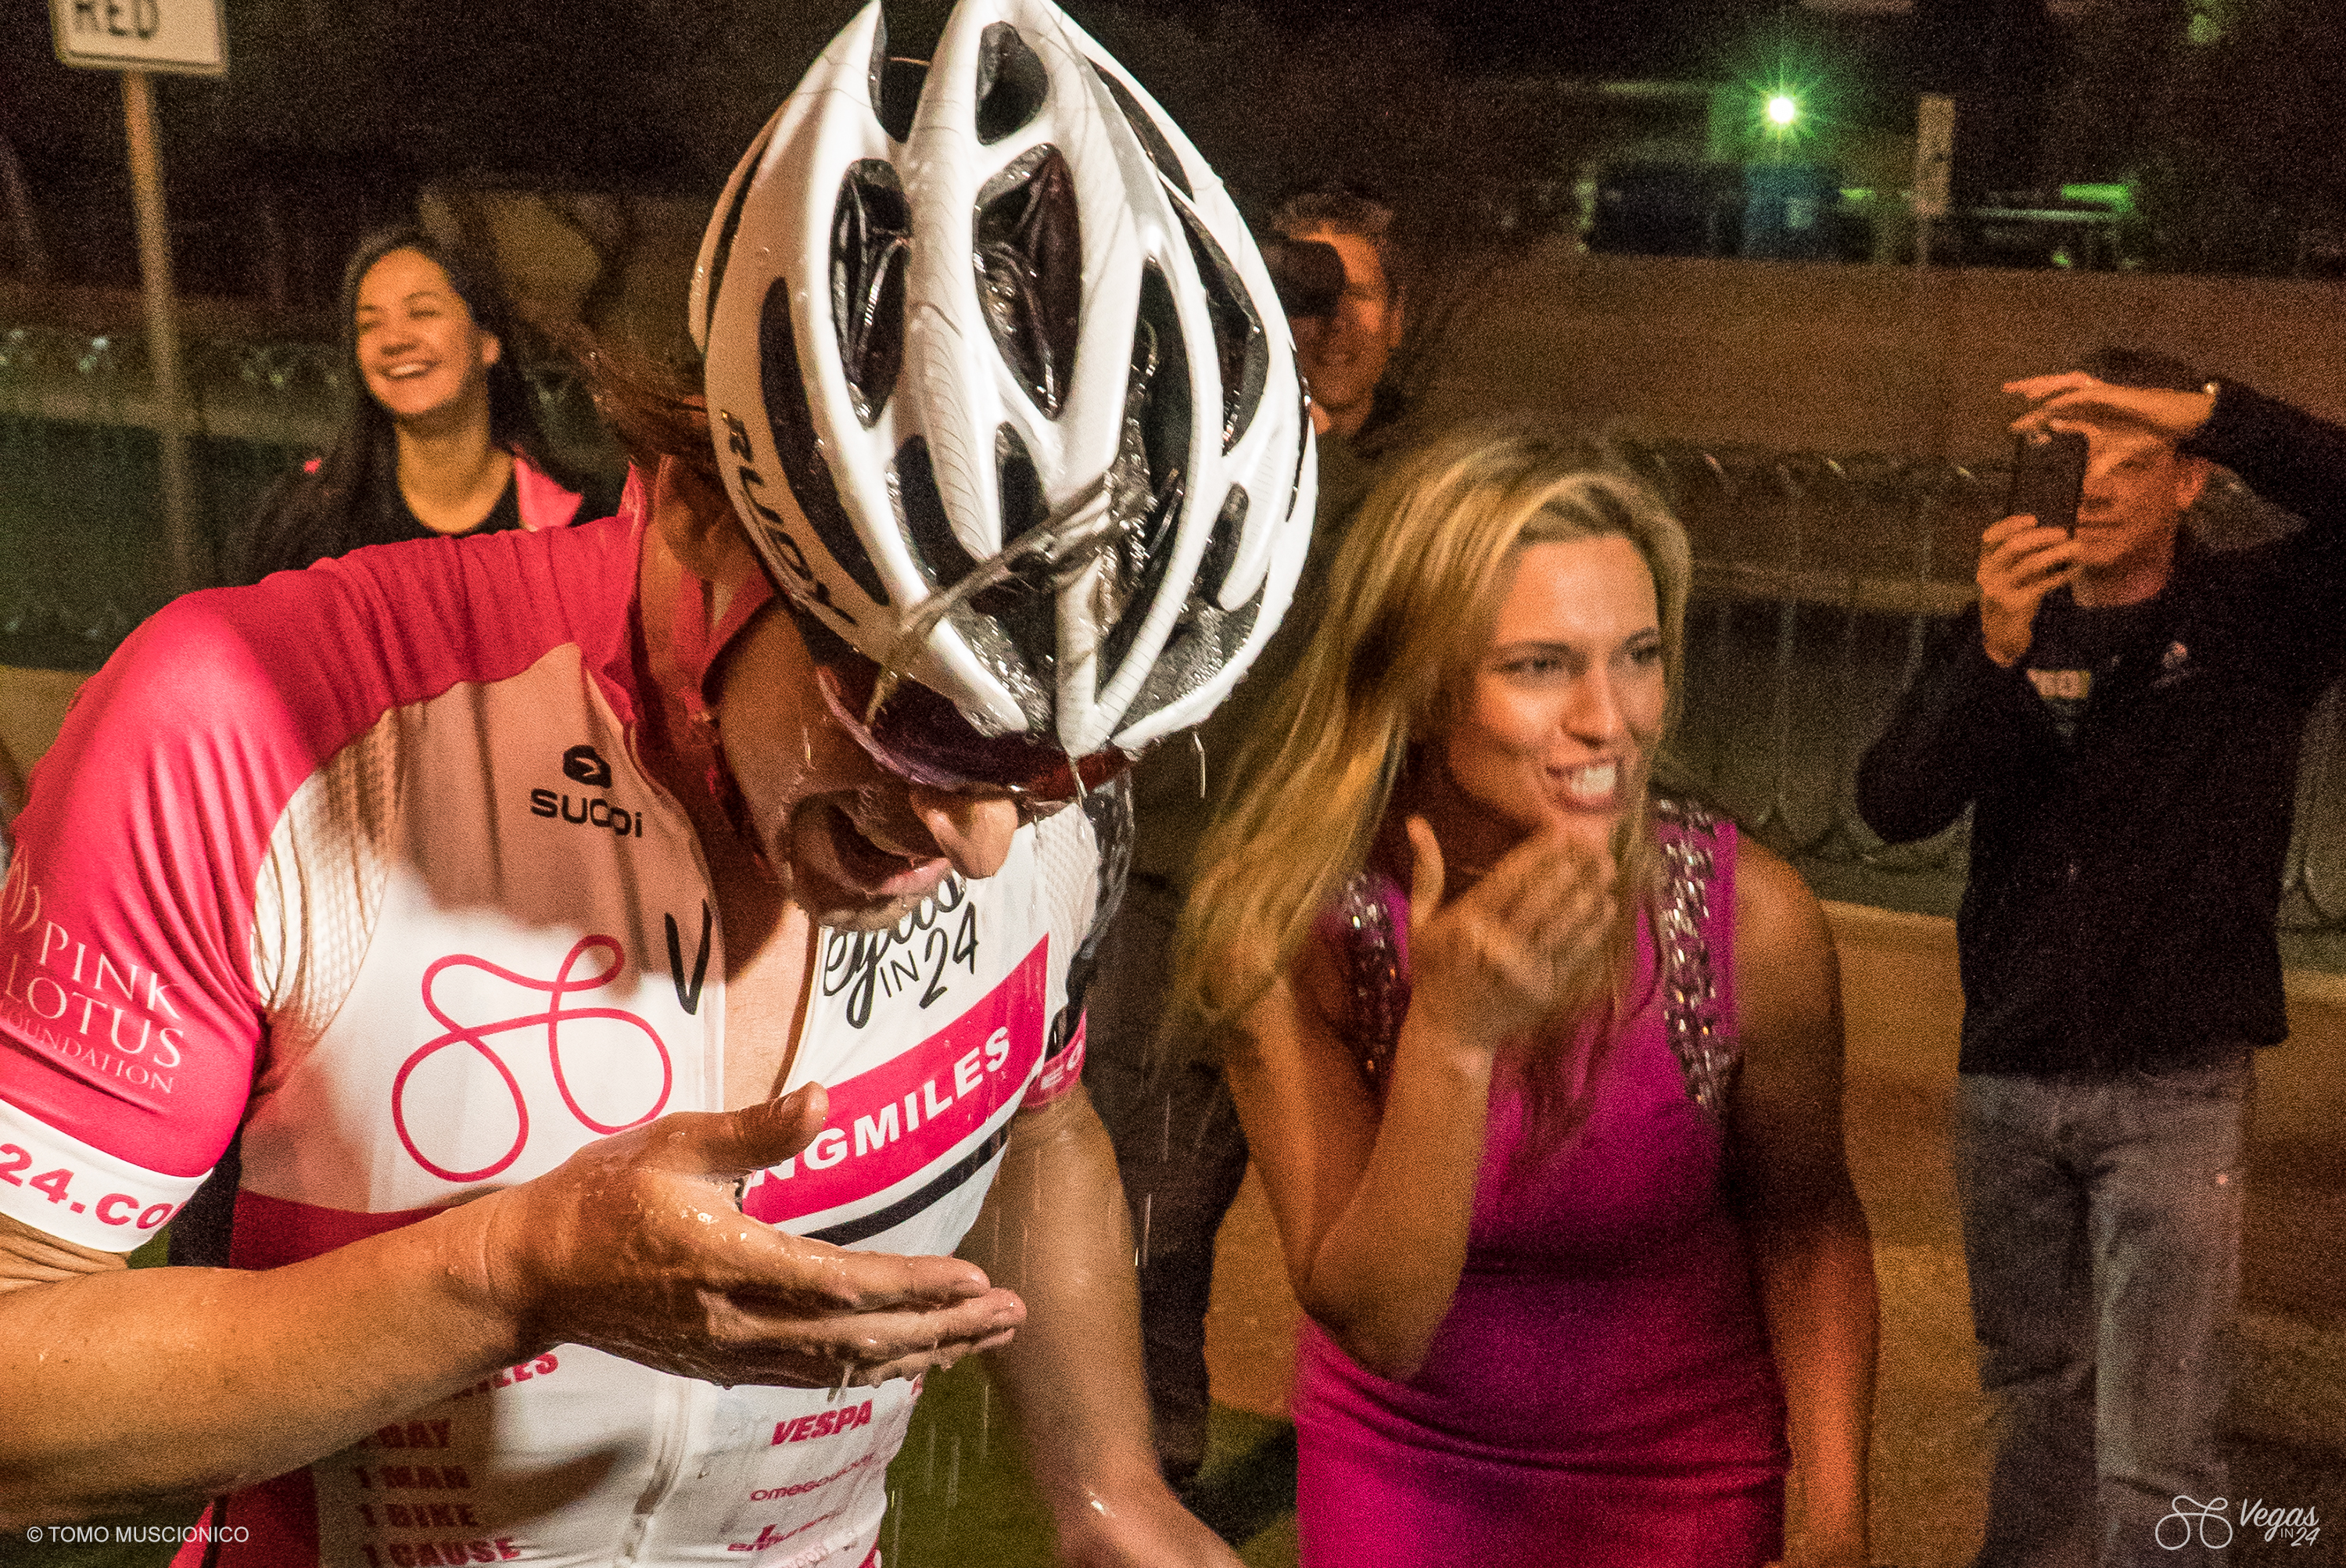 After 365 miles and 20:41:25 grueling hours in the saddle, Kristi Funk surprises Andy Funk with a champagne shower at the finish line in Las Vegas.